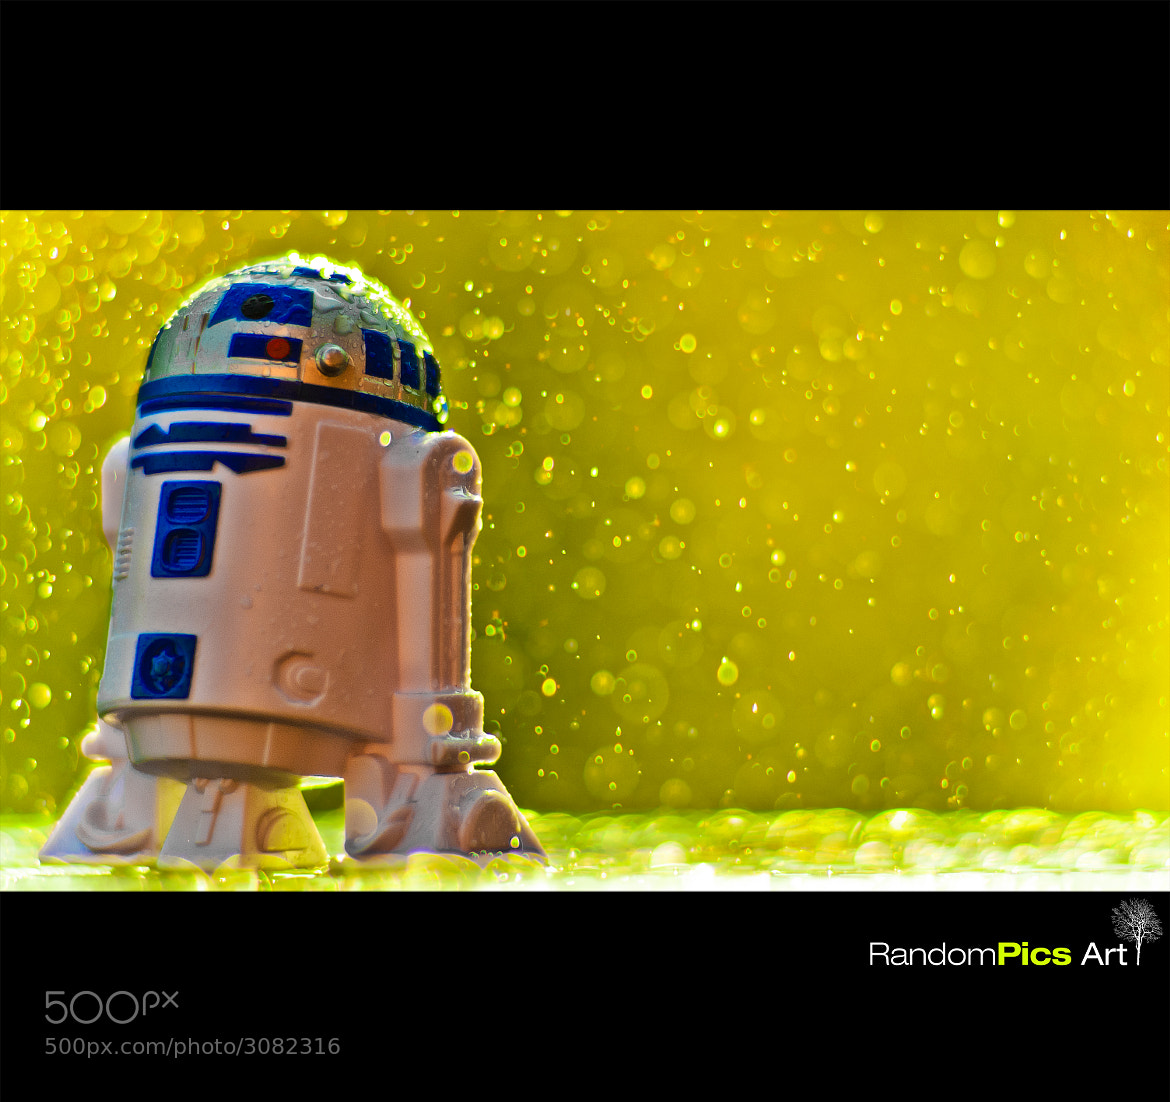 Photograph R2-D2 by RandomPics Art on 500px